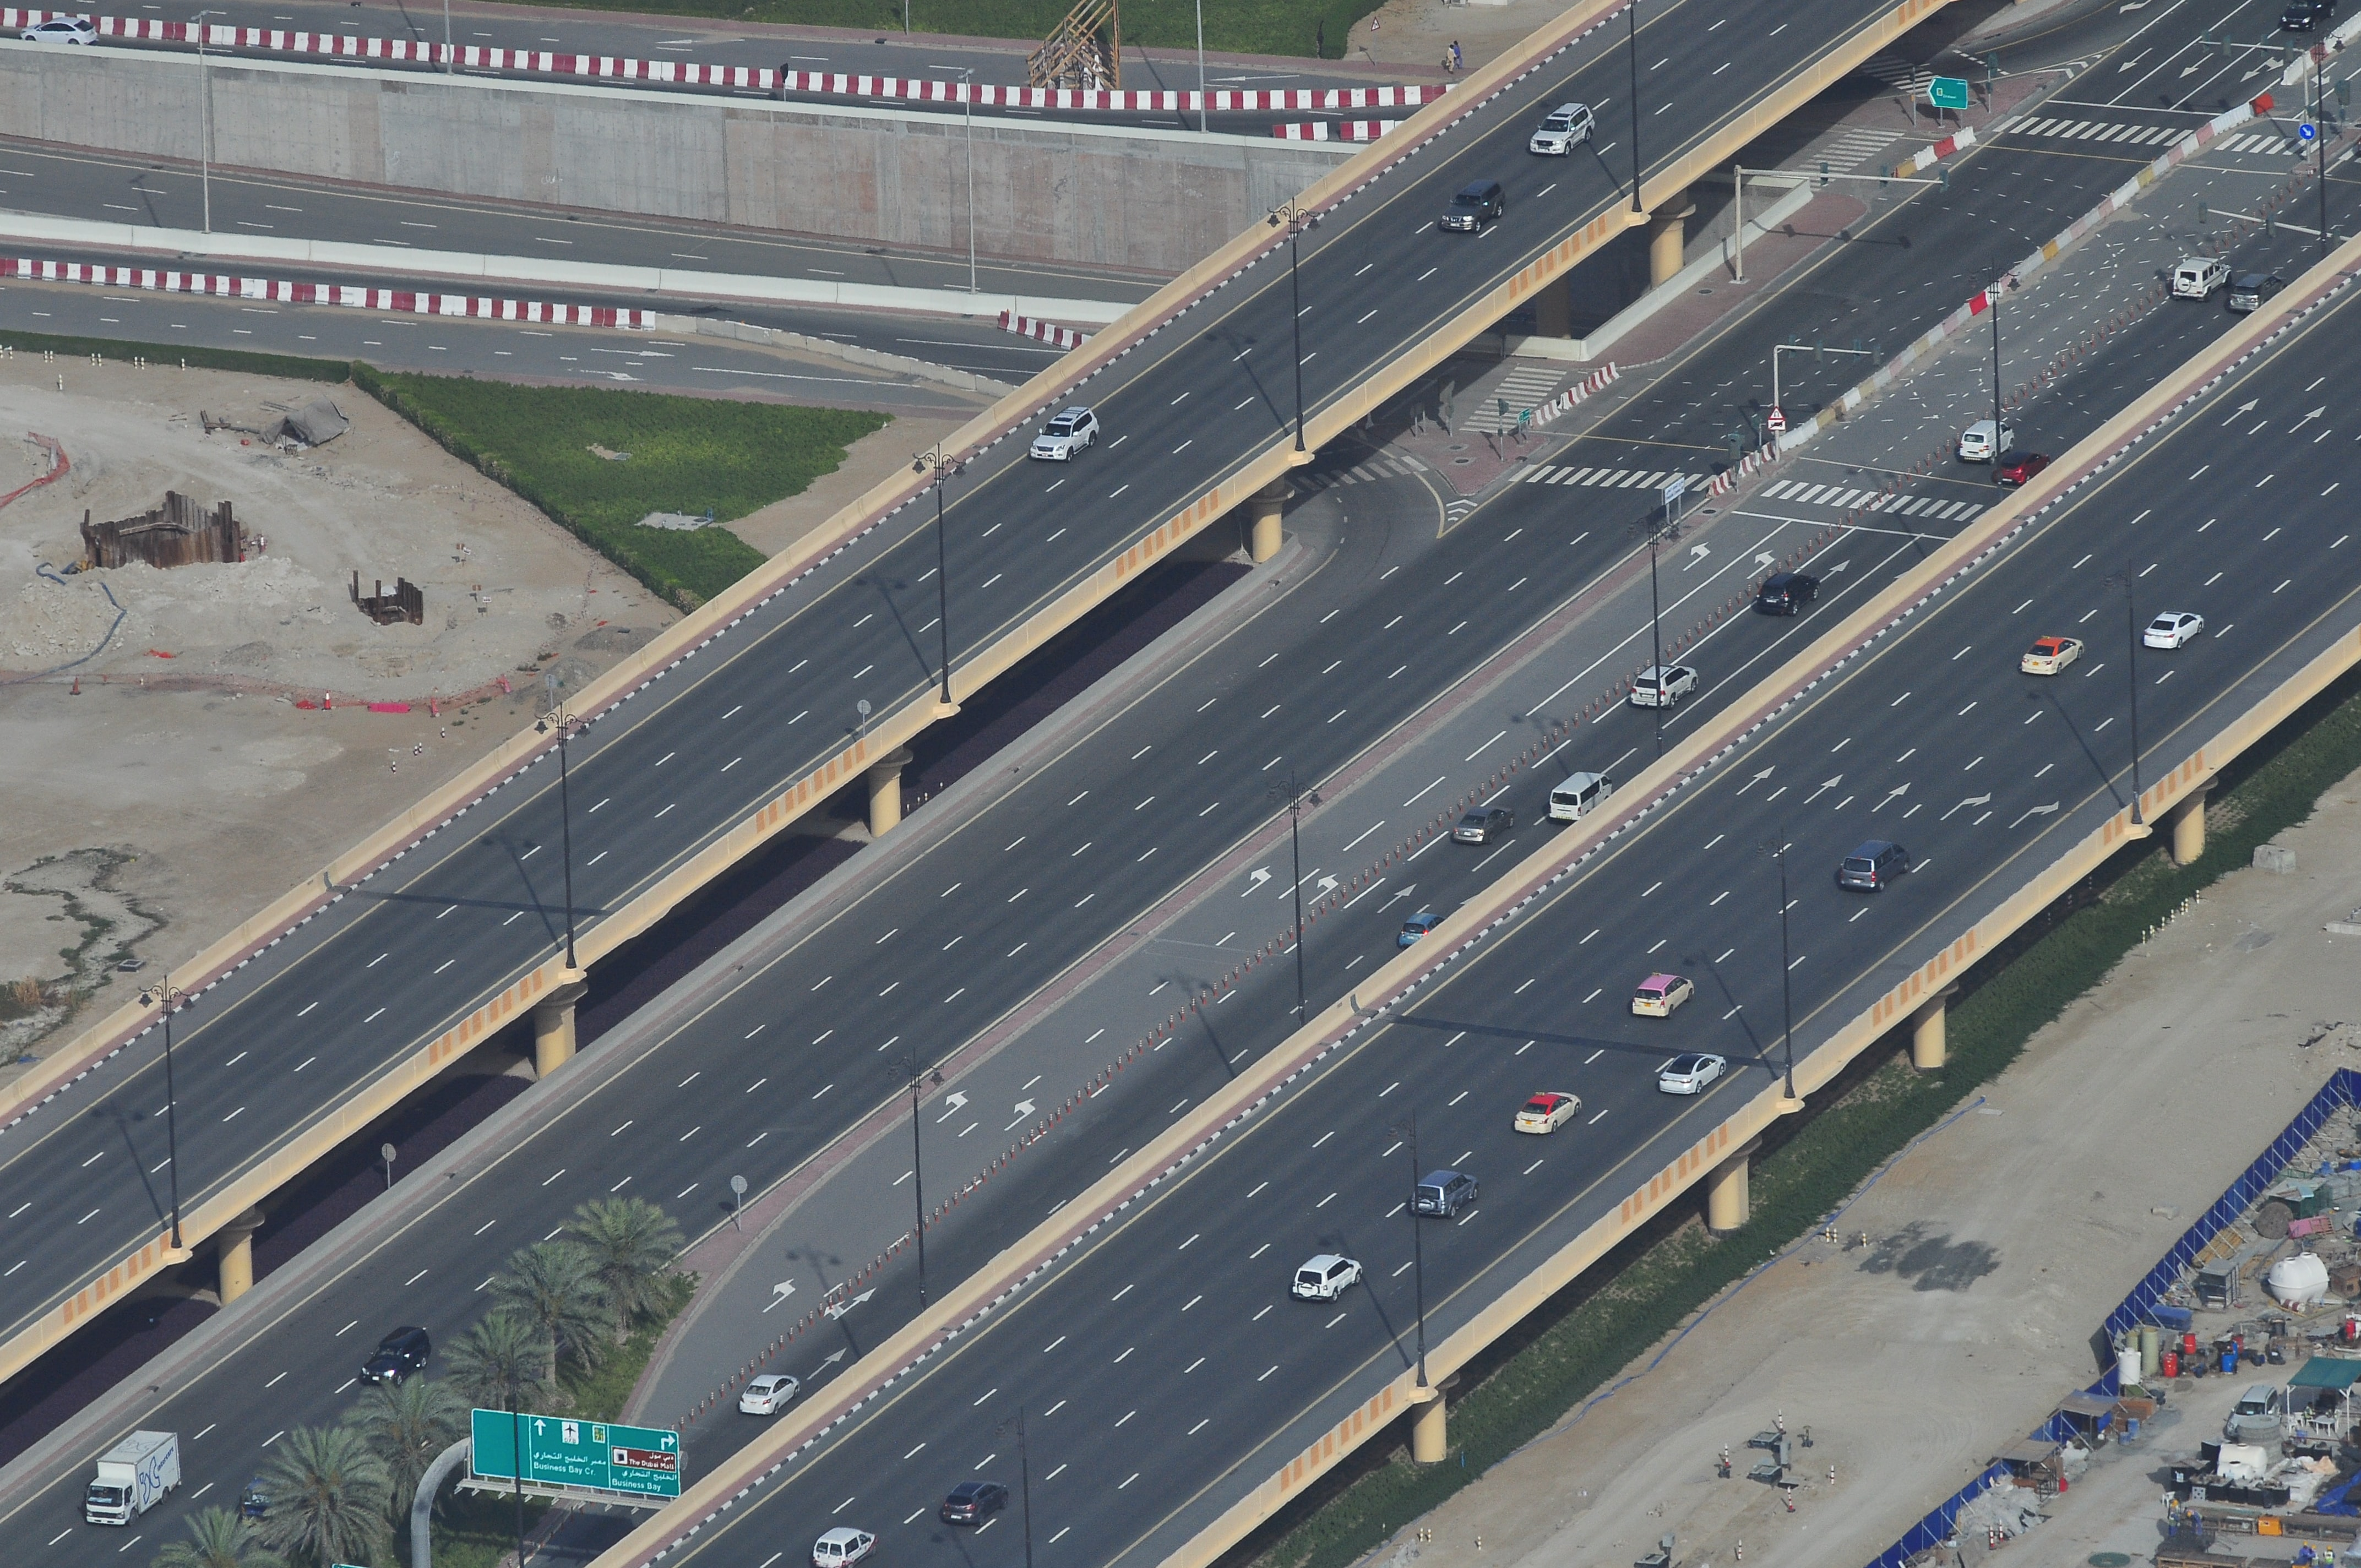 An aerial shot of cars on a multi-lane freeway